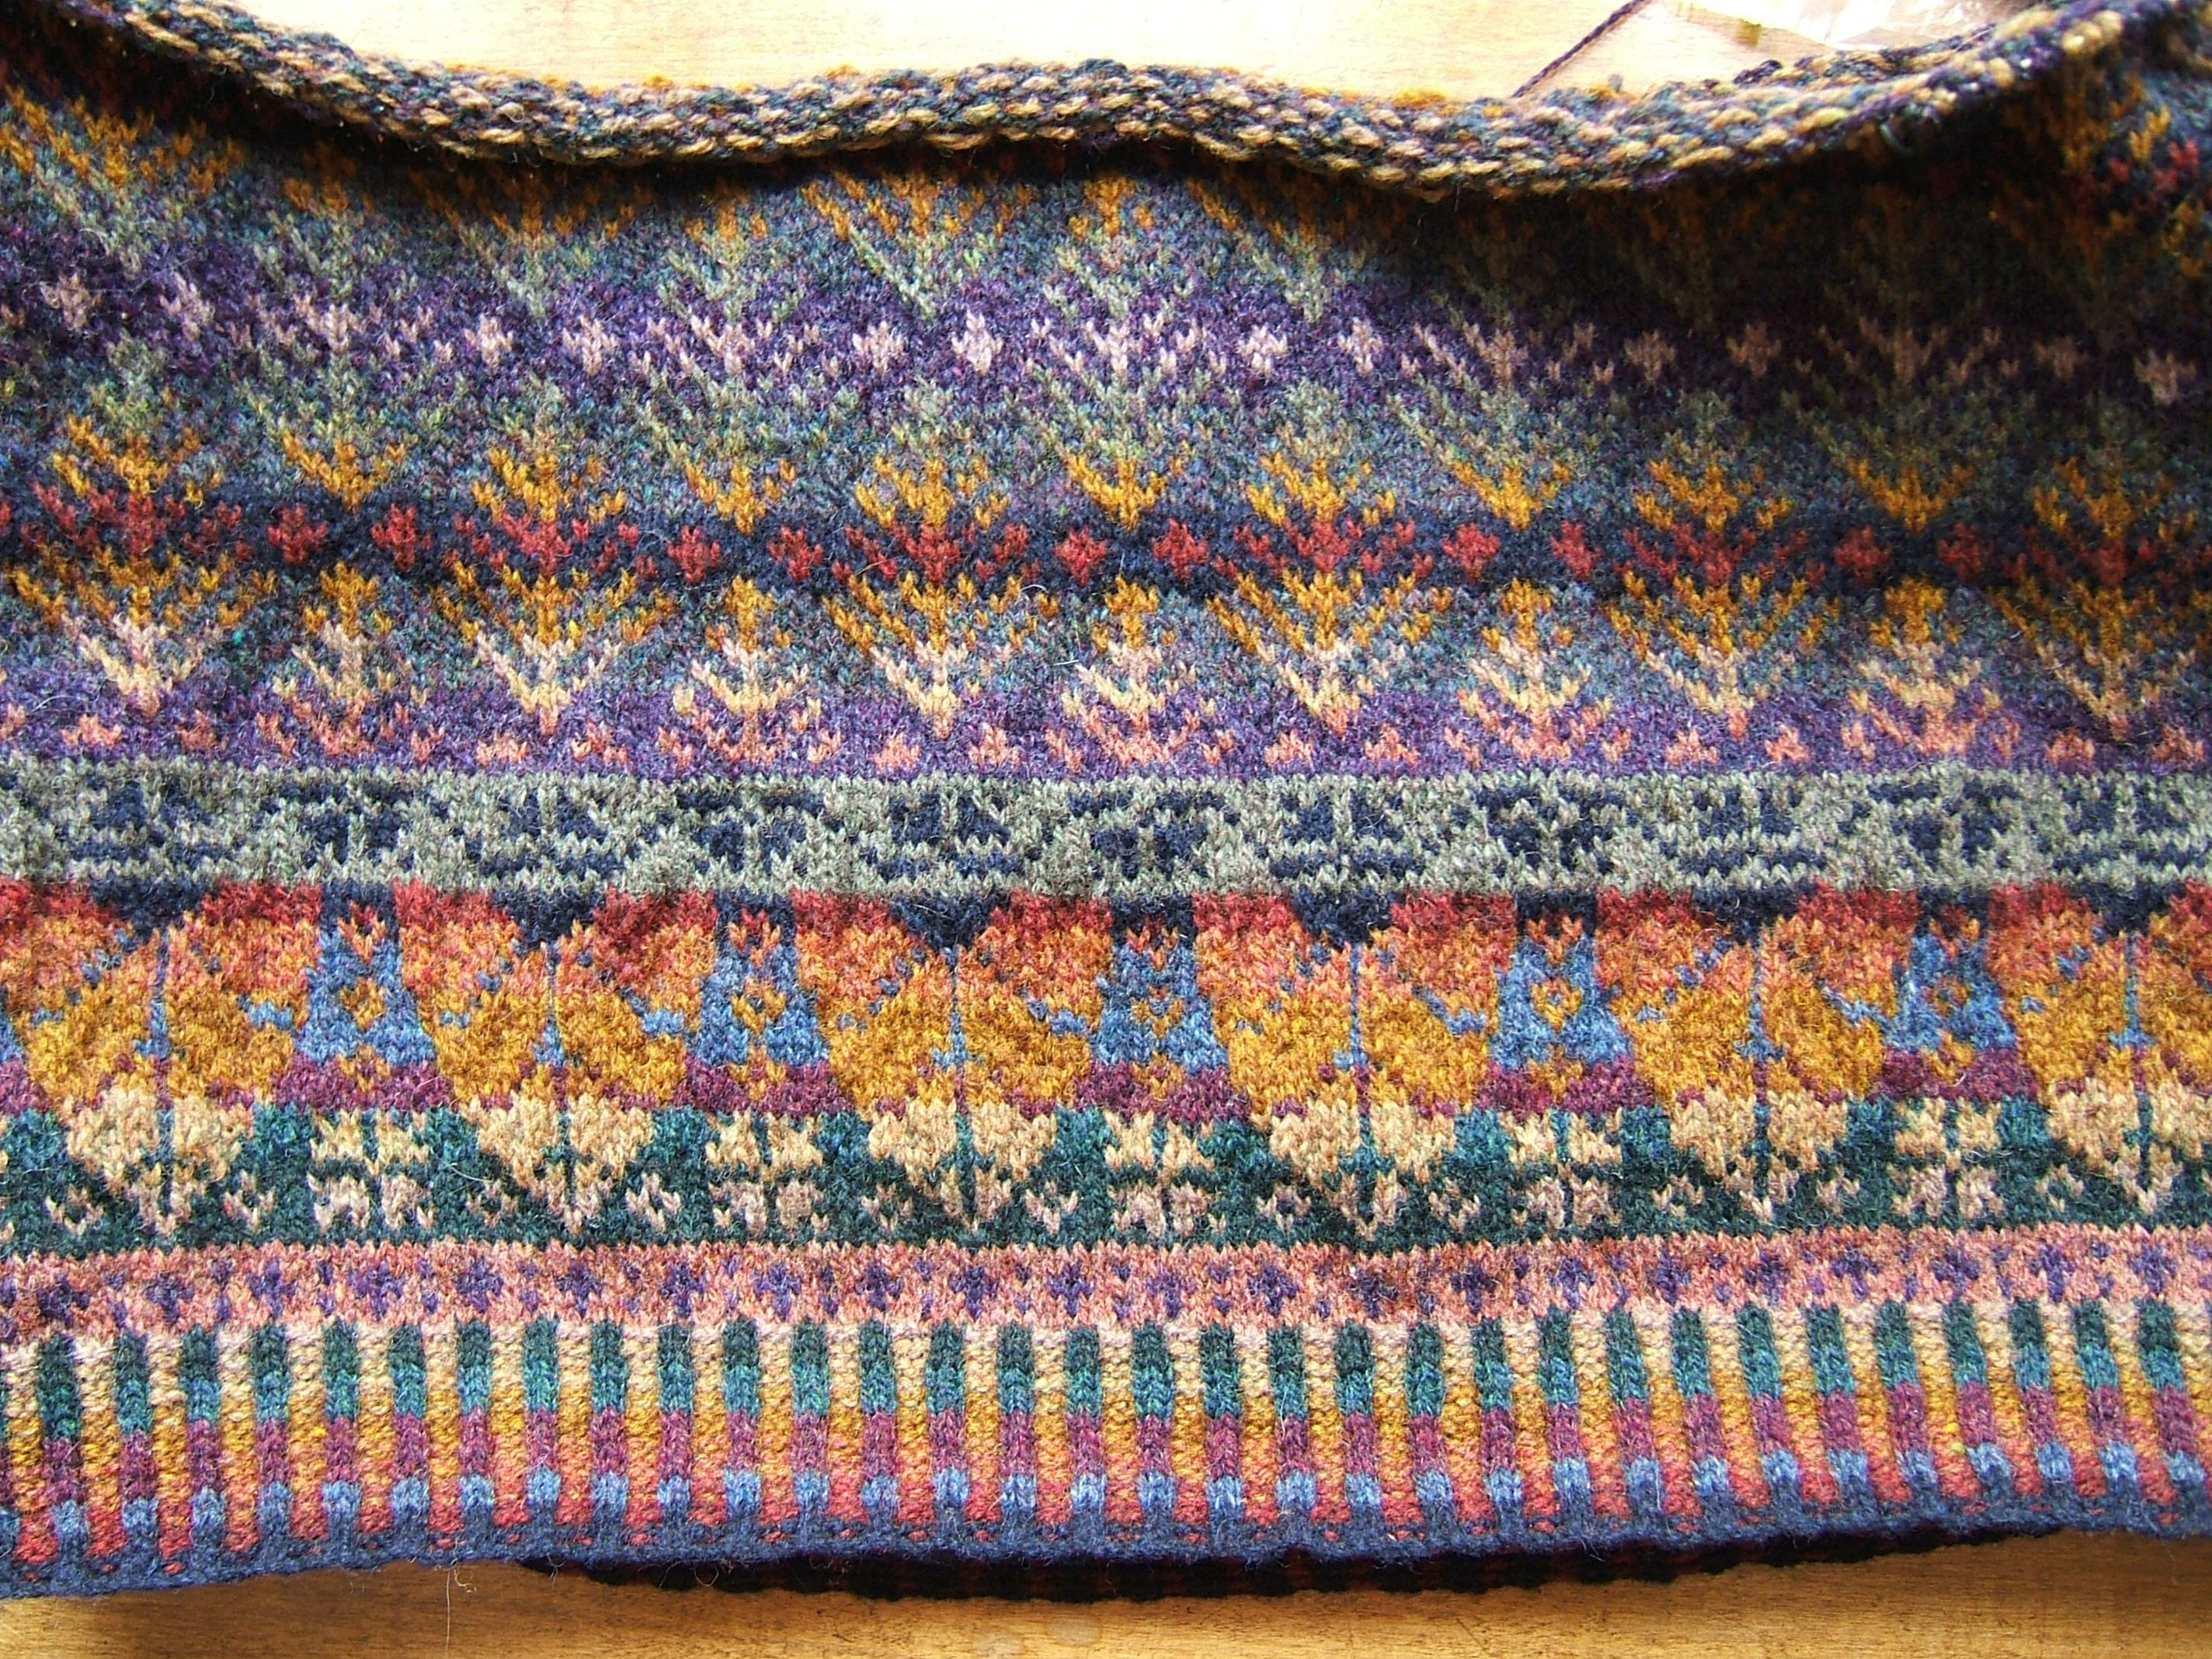 Knitting Speed Stitches Per Minute : The Secret to Speed in Fair Isle Knitting - West Coast Knitter knit designs...